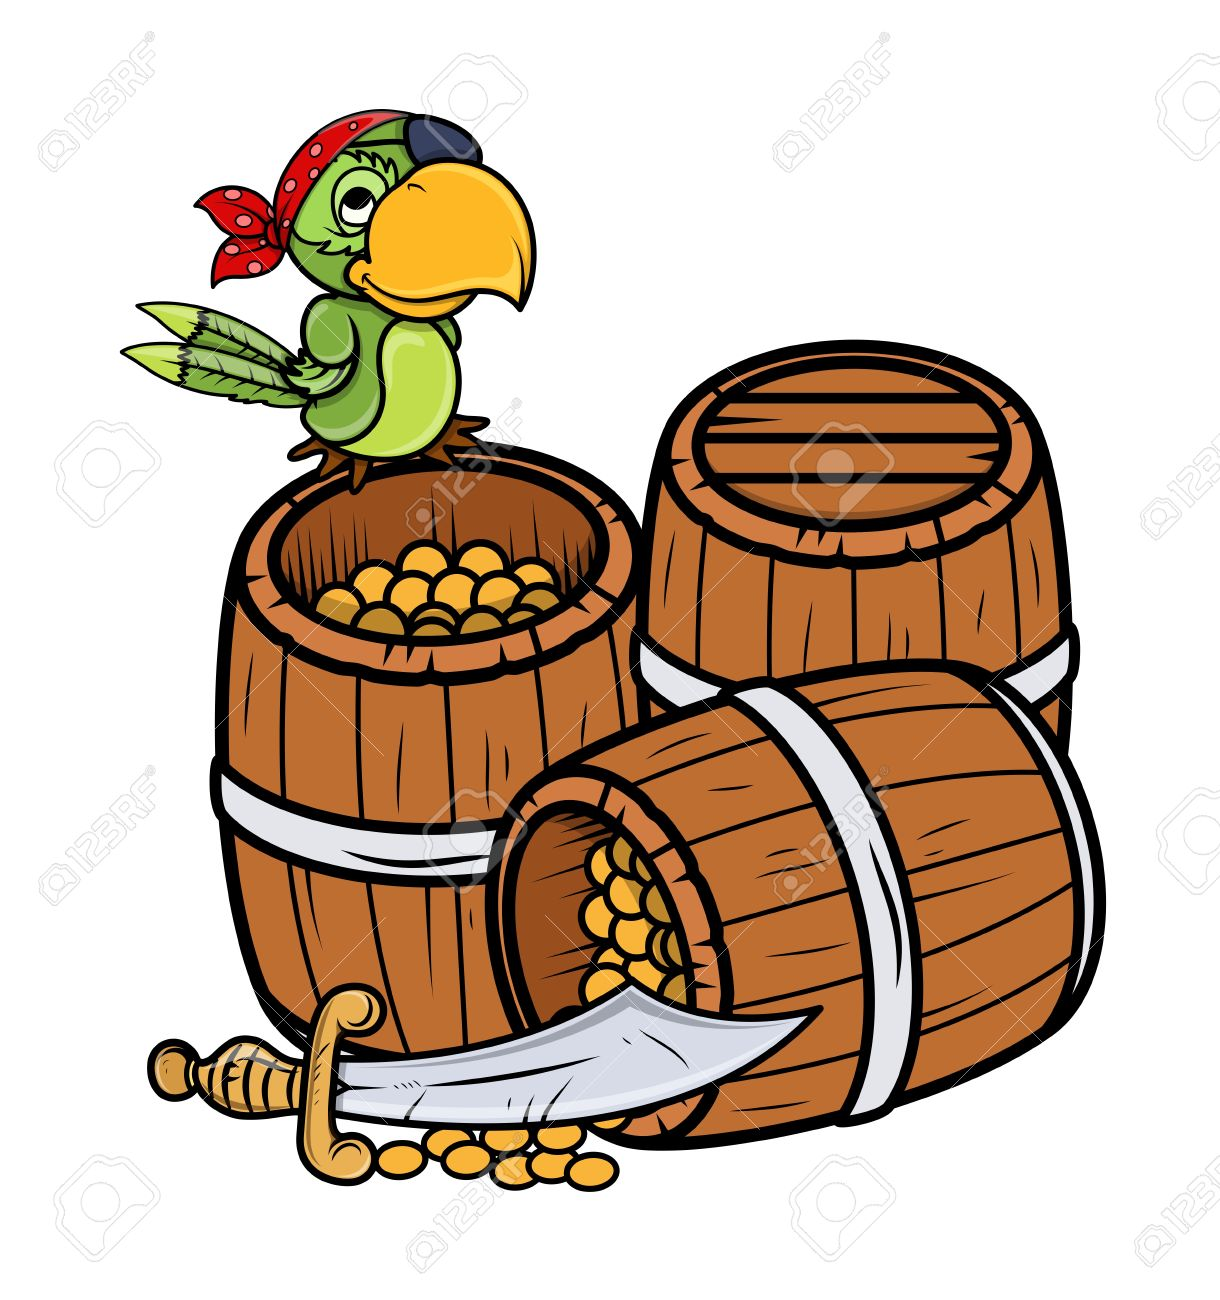 Parrot Cartoon Pictures Parrot Cartoon Treasure And